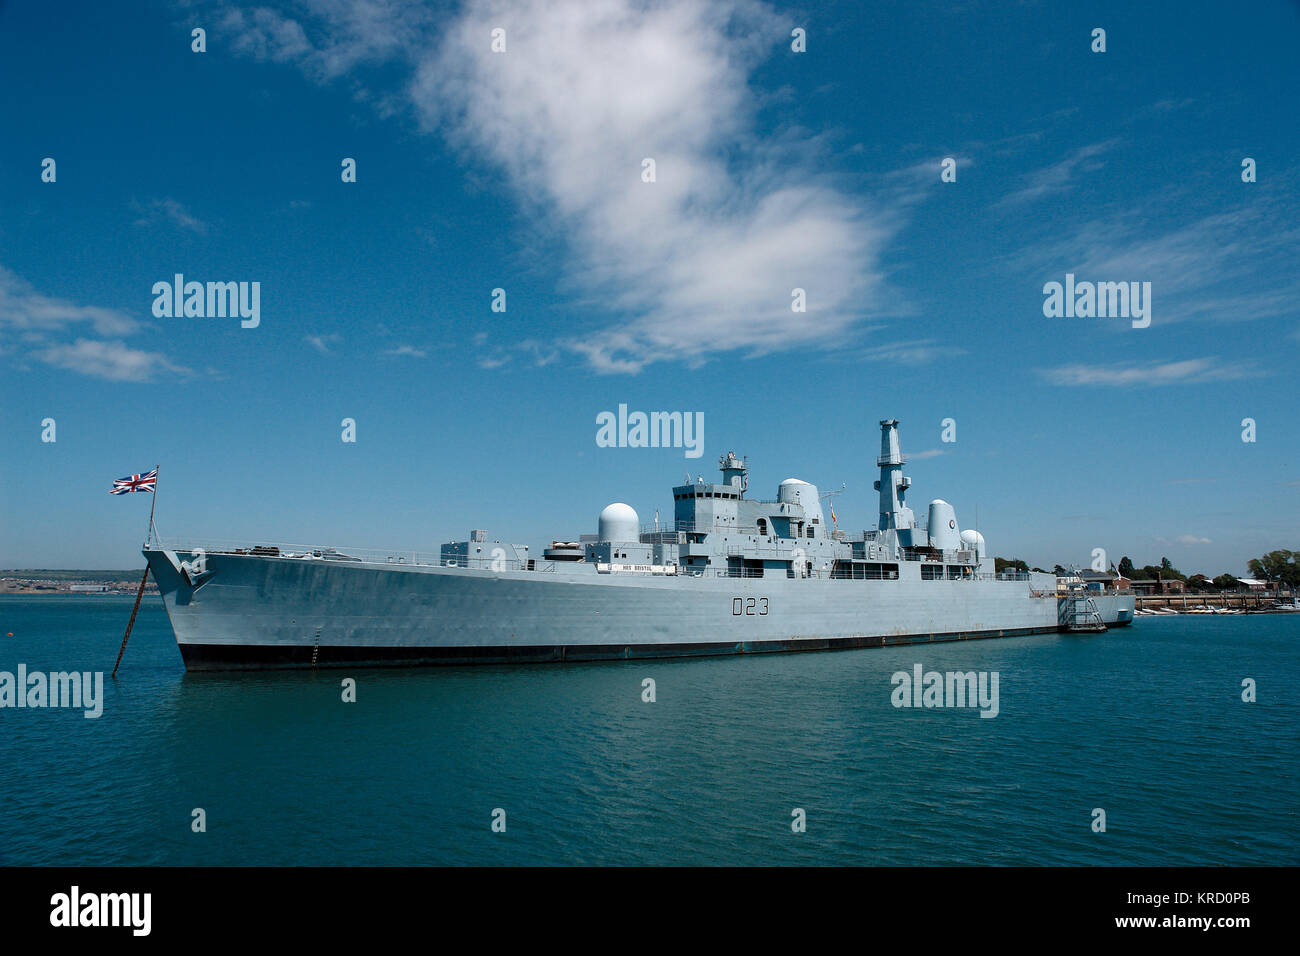 A Royal Navy ship at Portsmouth.      Date: 2009 - Stock Image